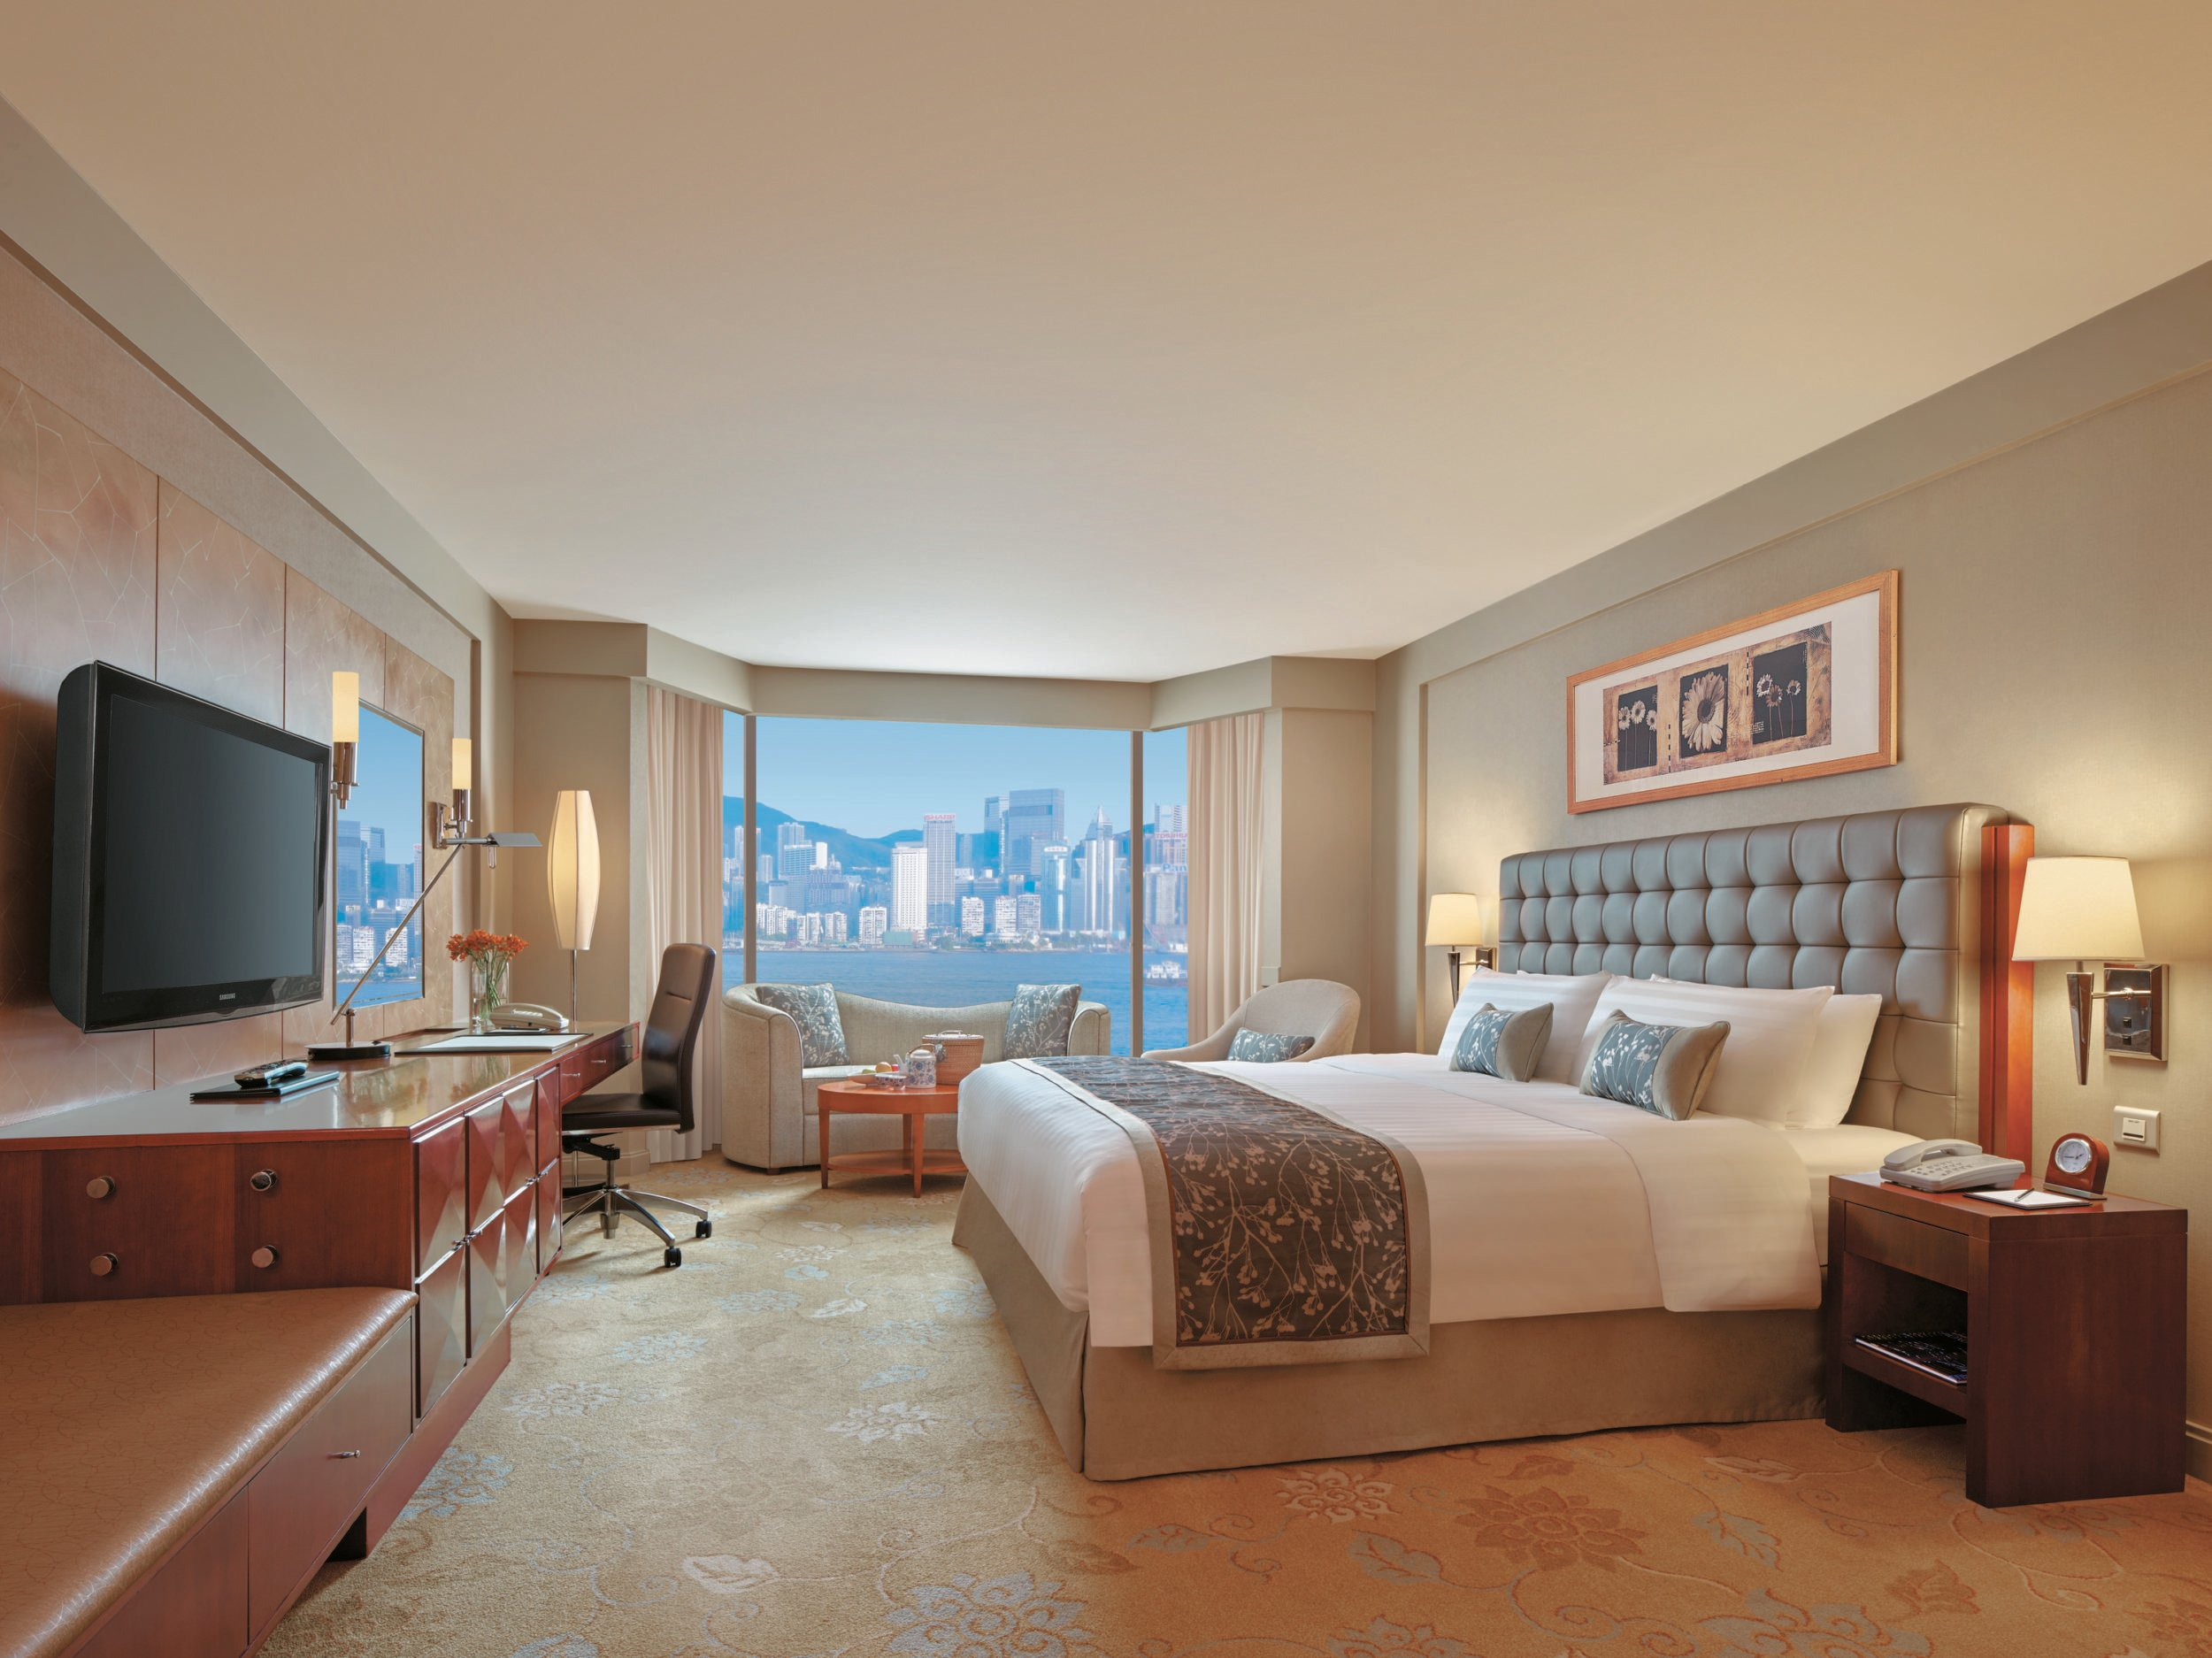 Best Kowloon Shangri la is a great value for a family friendly luxury hotel in Hong